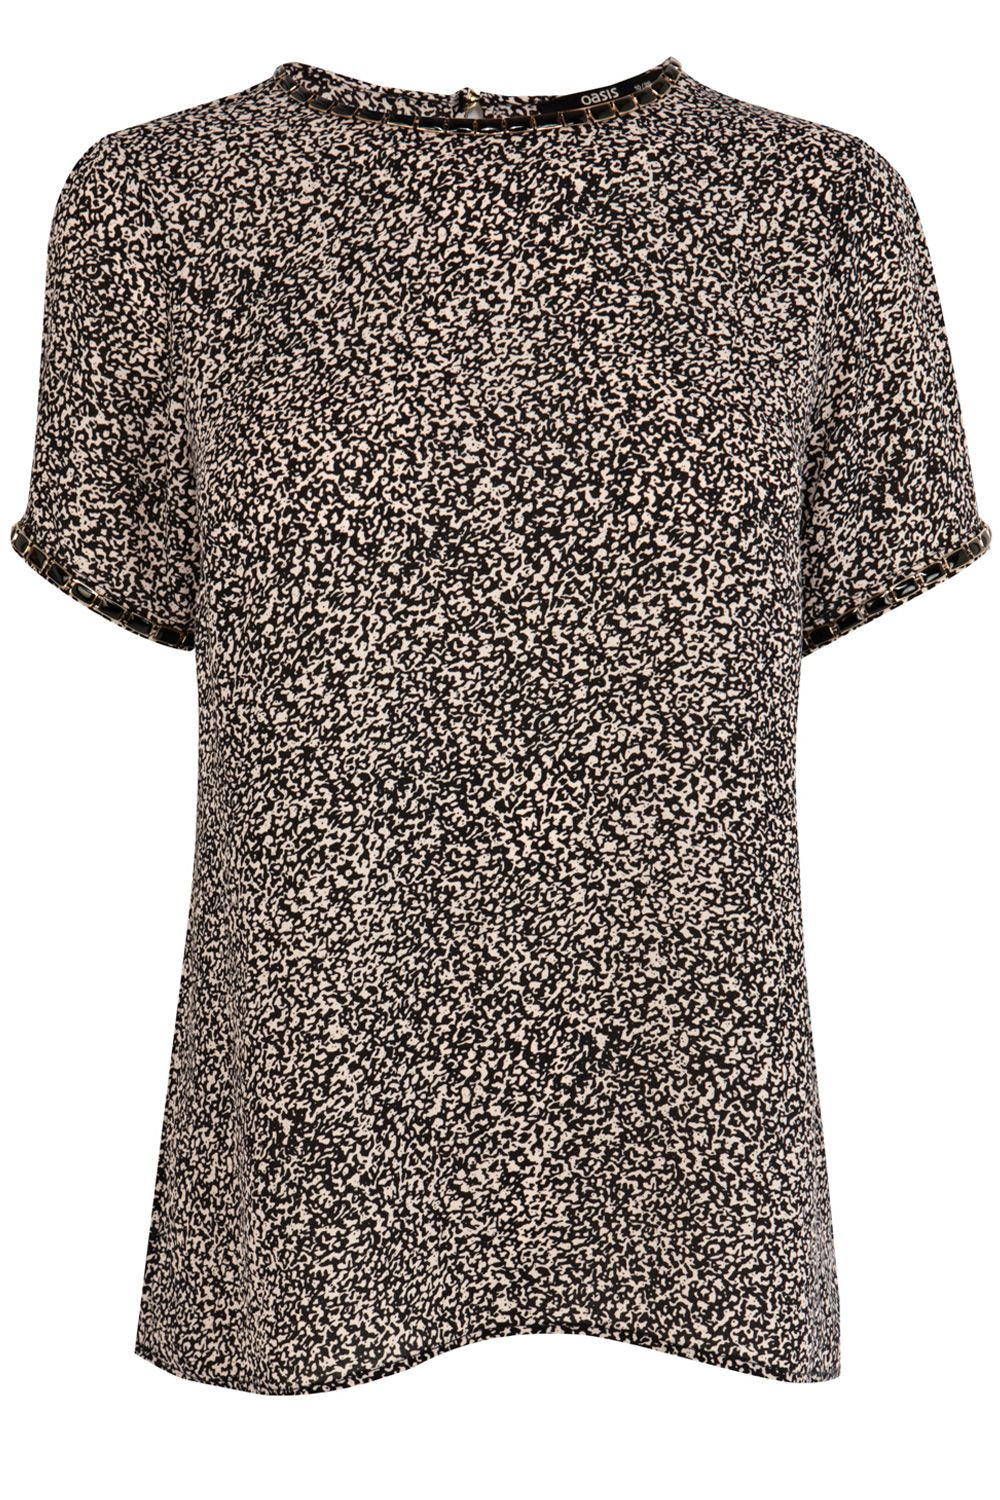 Animal embellished neck tee